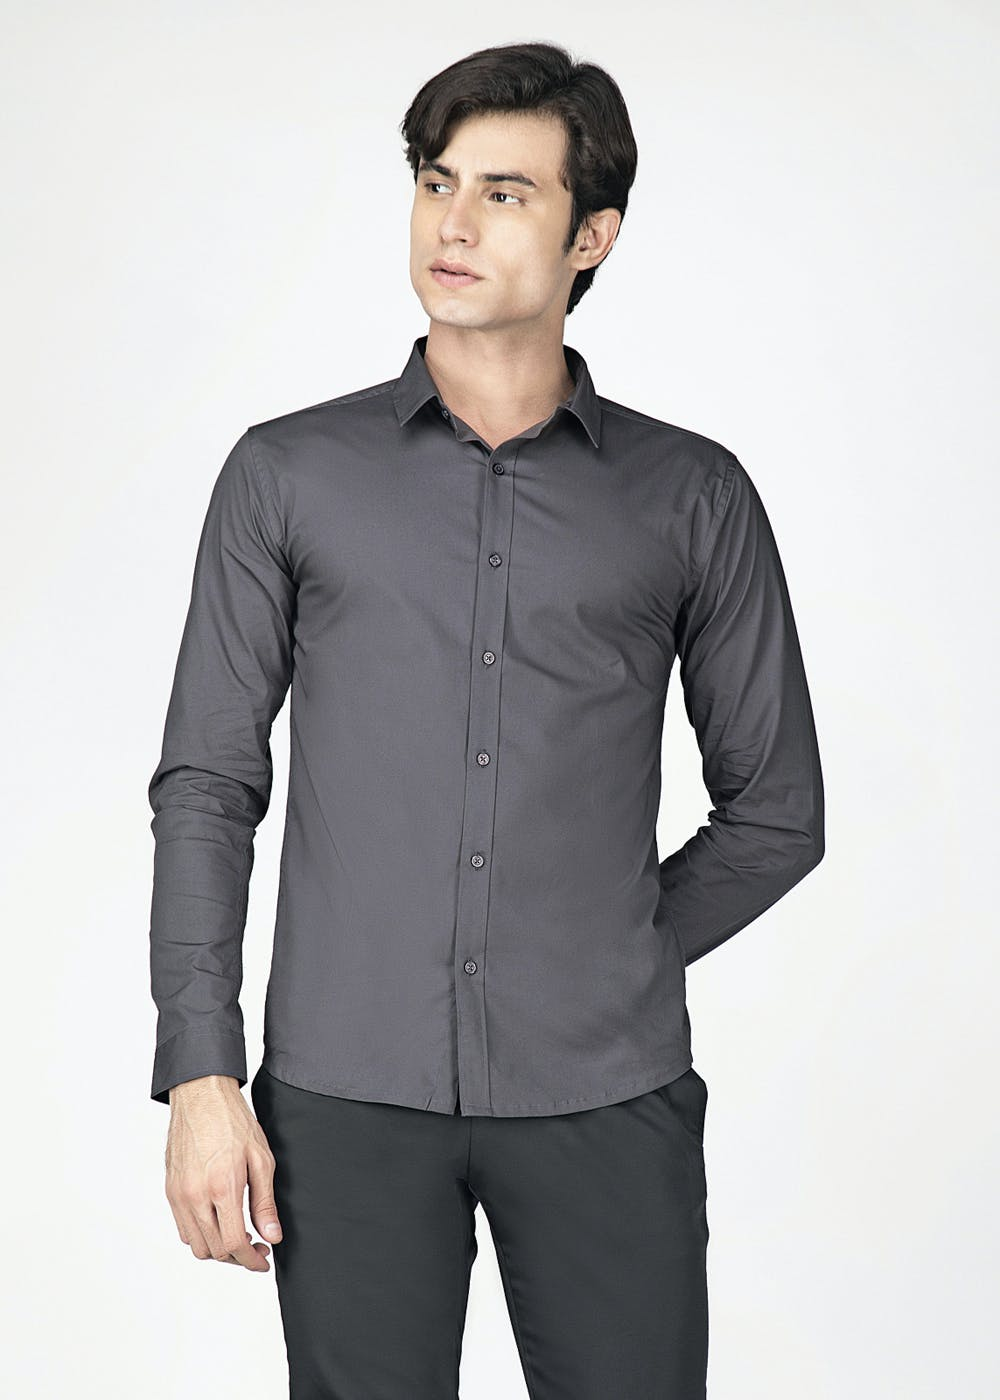 Classic Grey Muscle Fit Full Sleeves Shirt